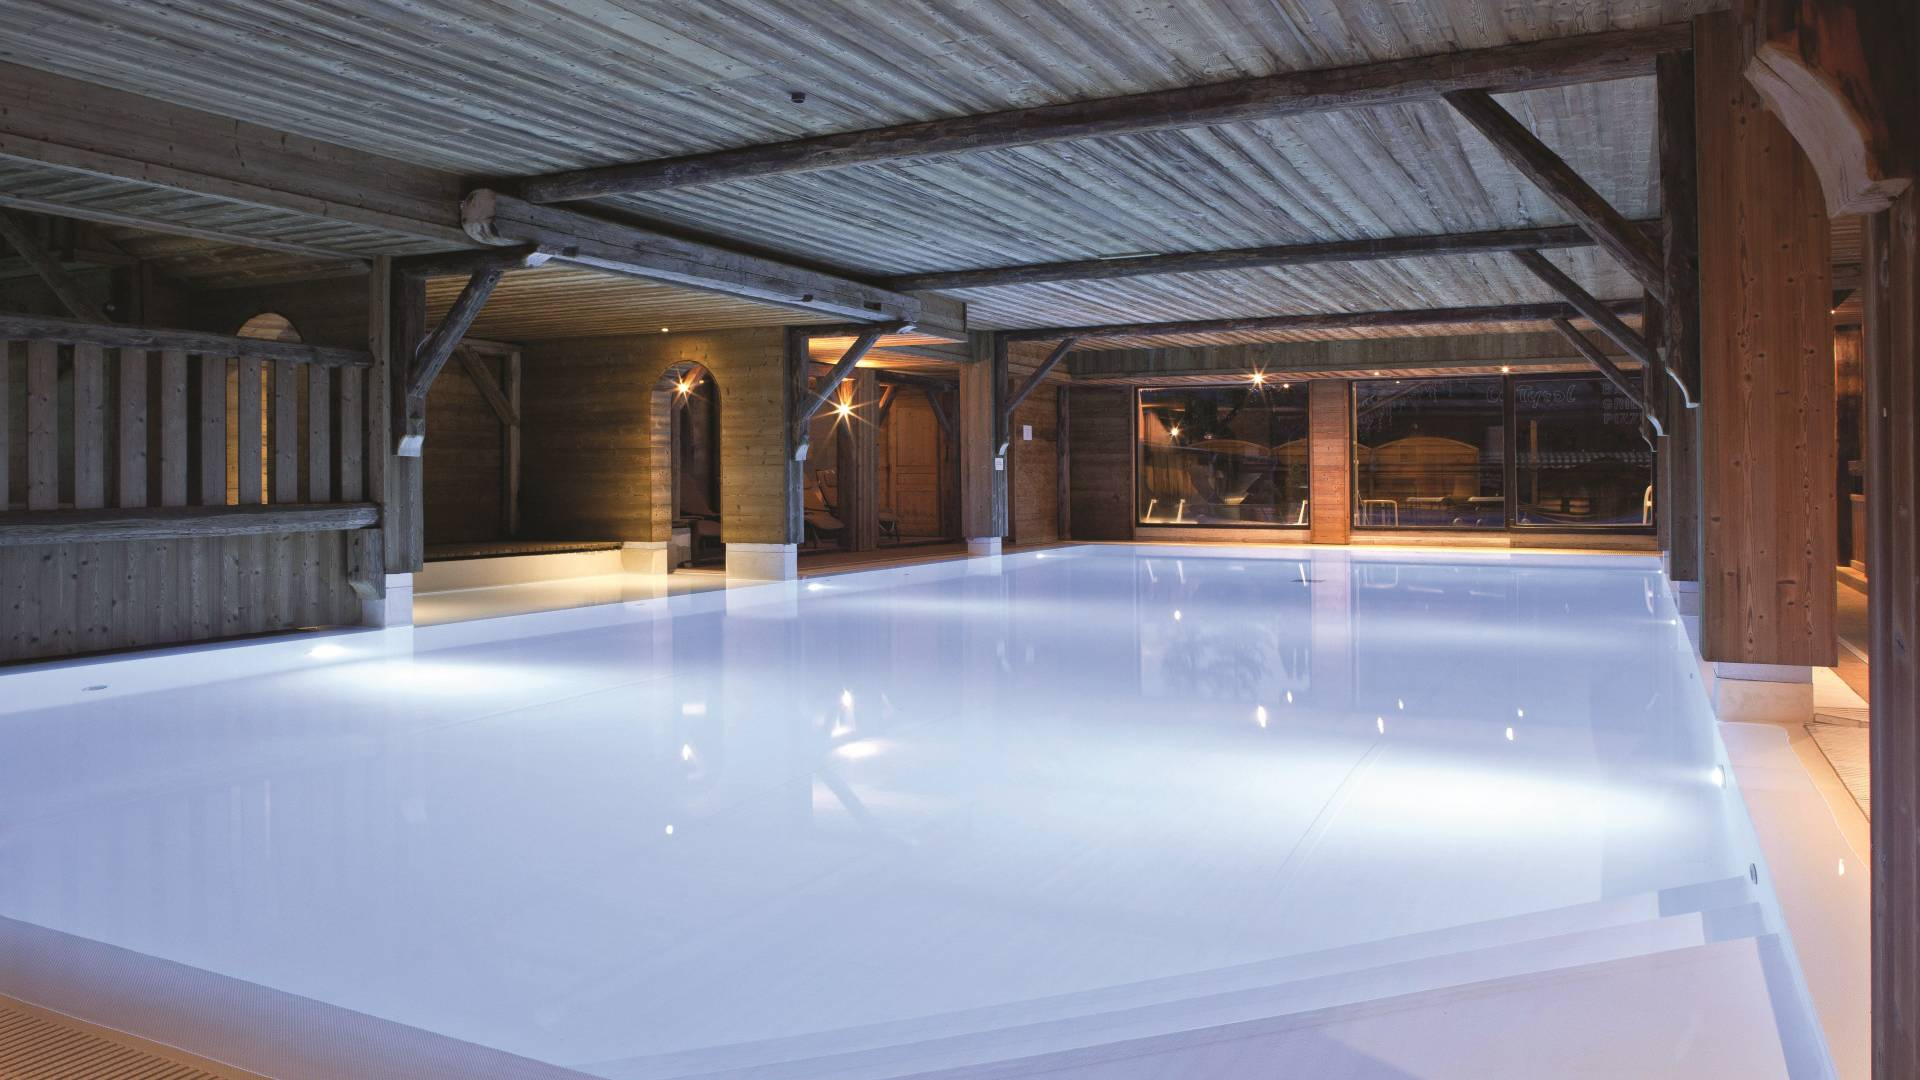 Find Out More About The News At Our Séréni Cimes Spa